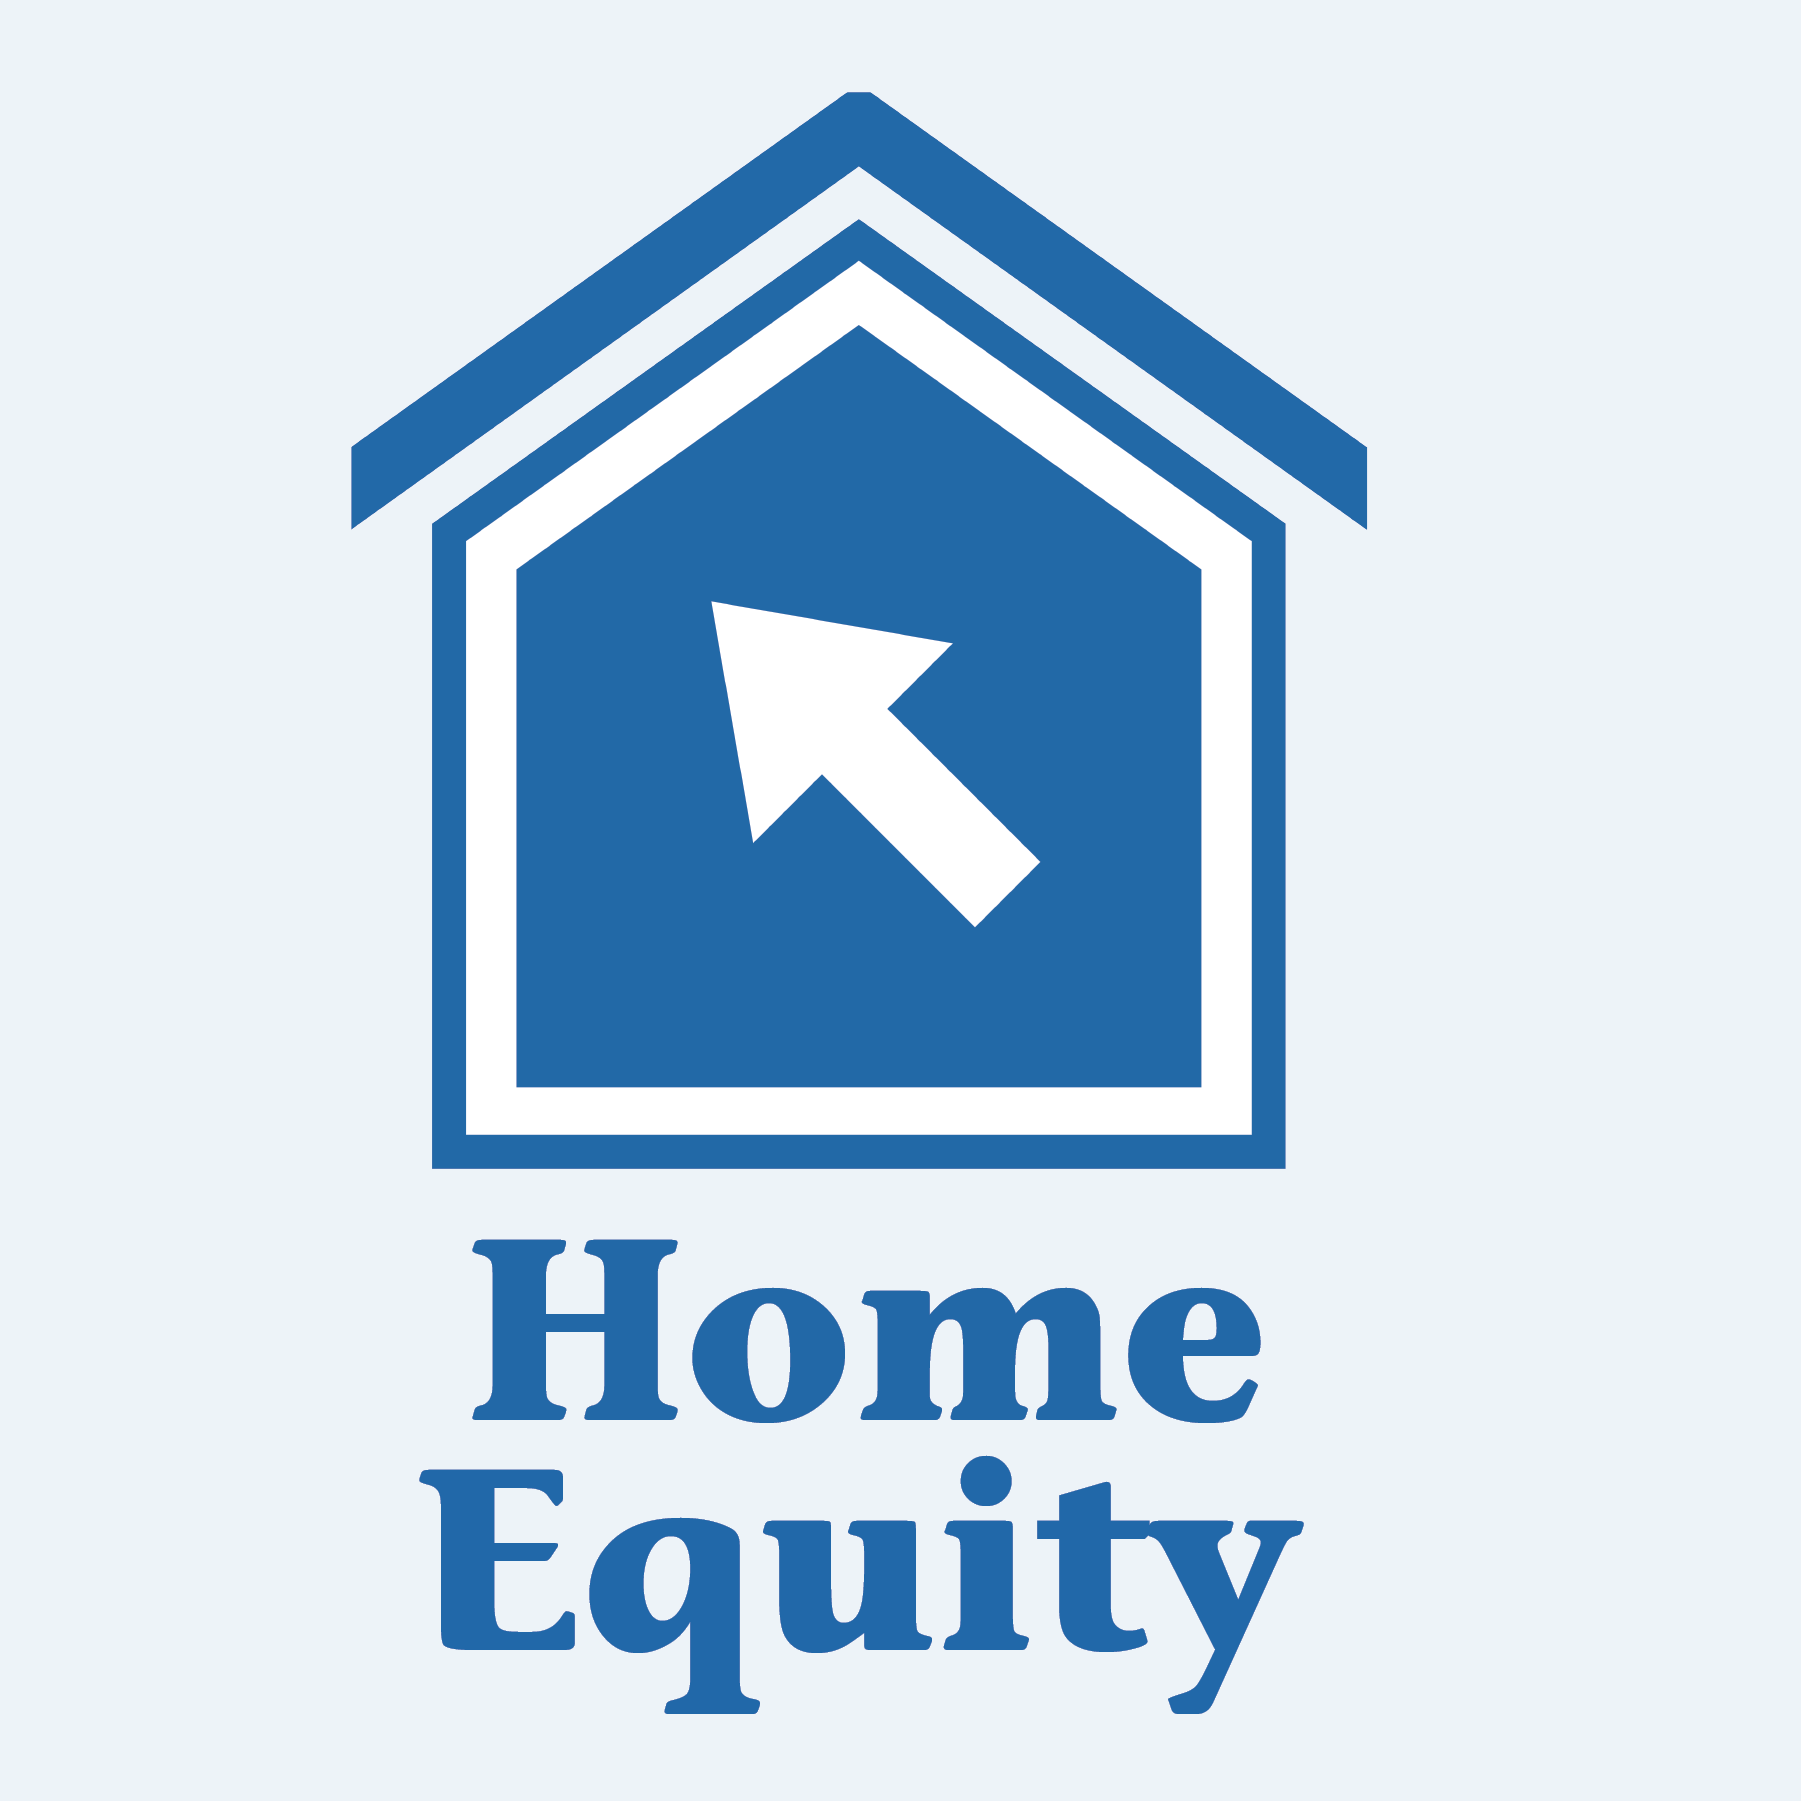 Home Equity Learn More